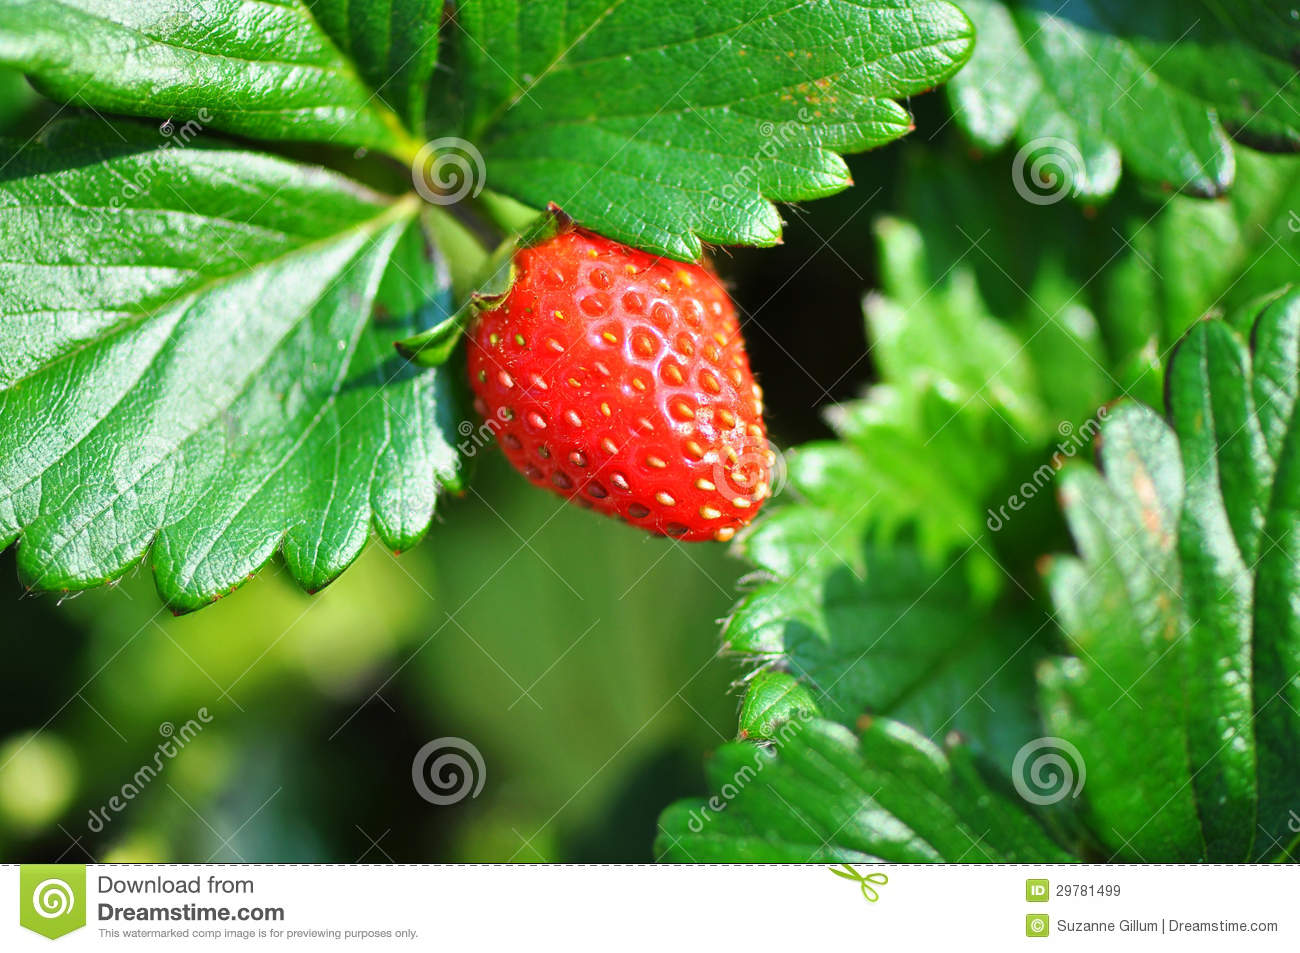 Sweetie Variety Of Strawberry Fruit Plant Amp Bush Royalty